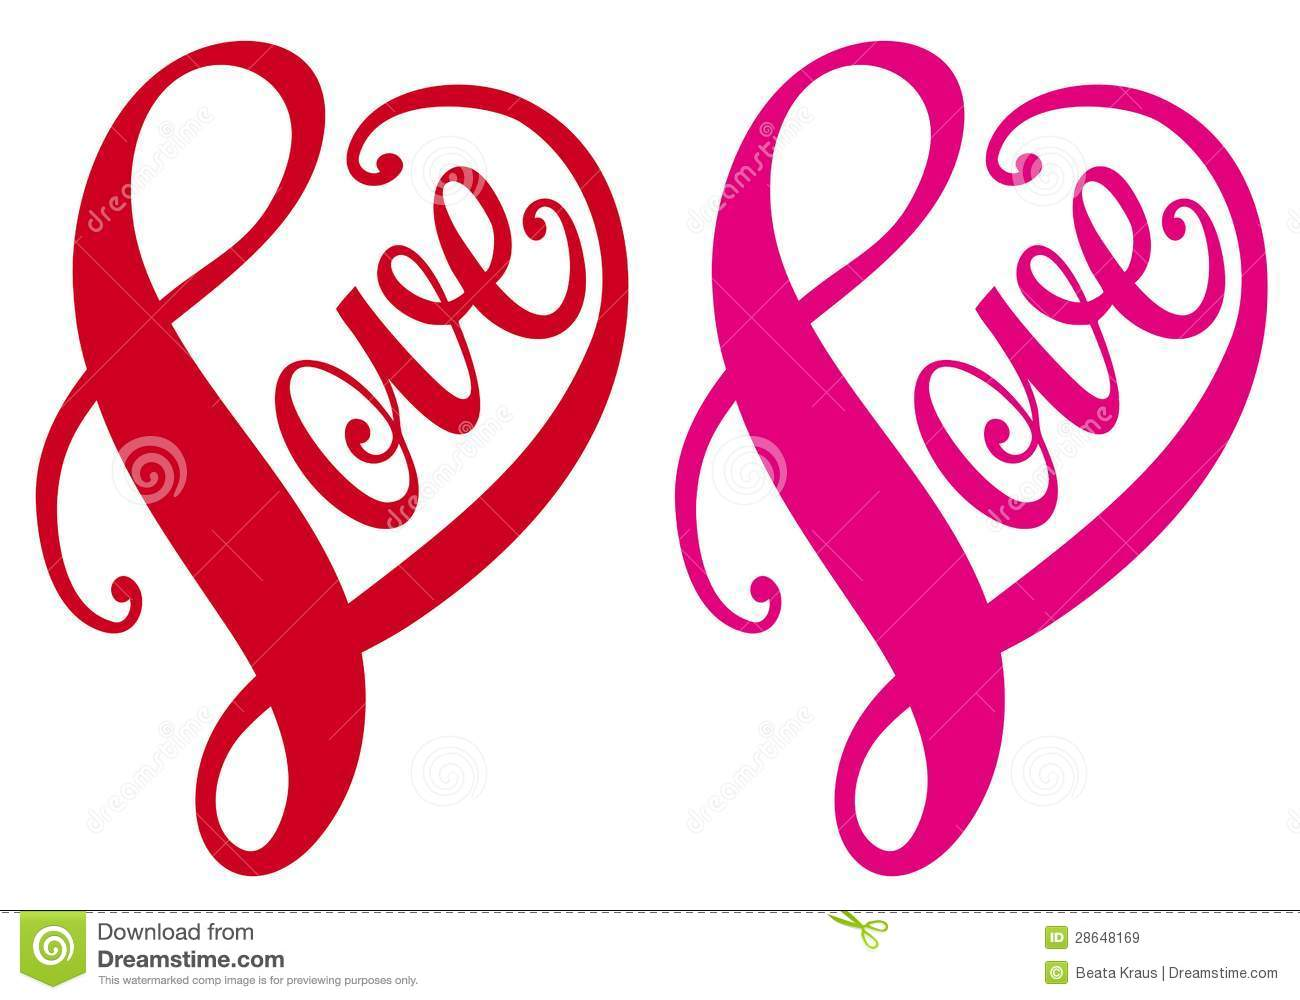 Love red heart design vector stock vector image 28648169 The designlover